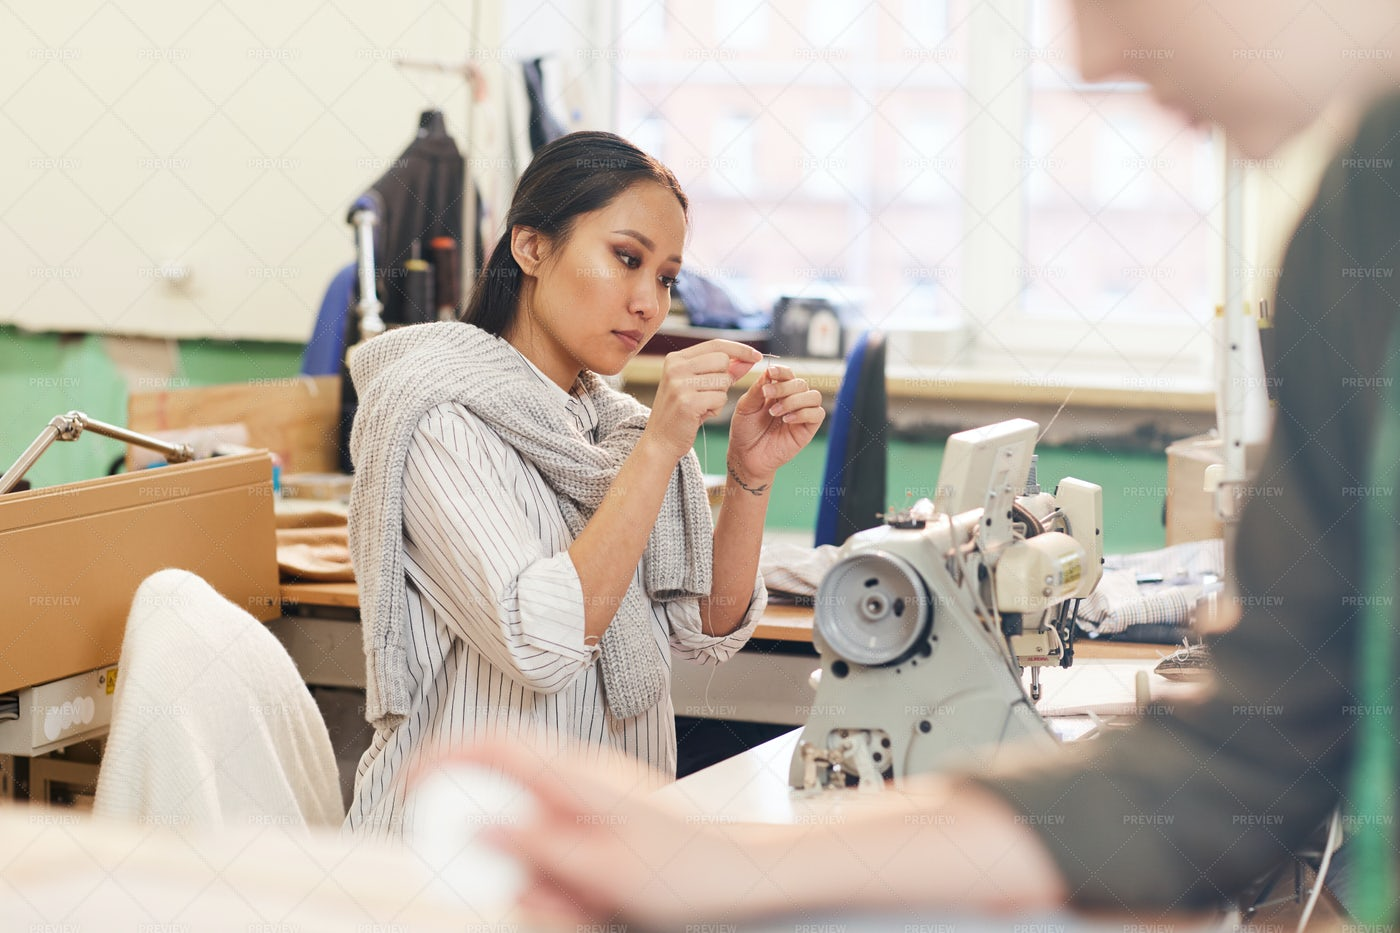 Woman Sewing With Needle: Stock Photos